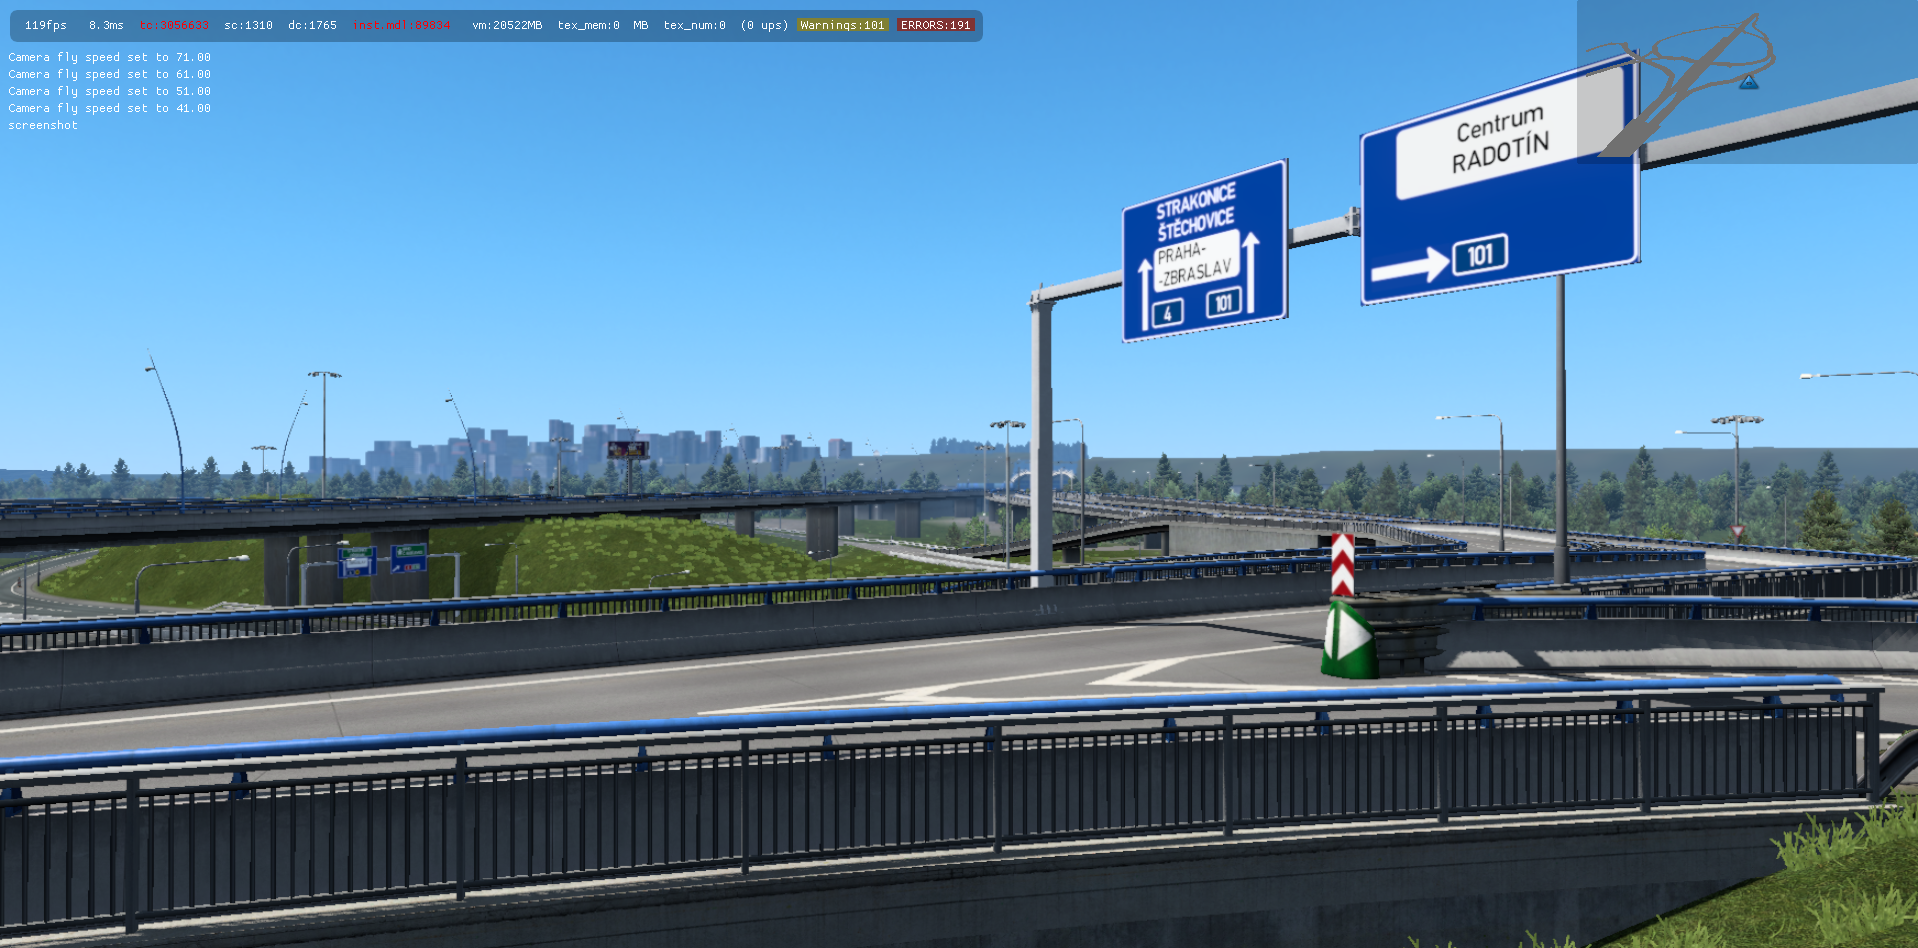 ets2_20210729_132328_00.png